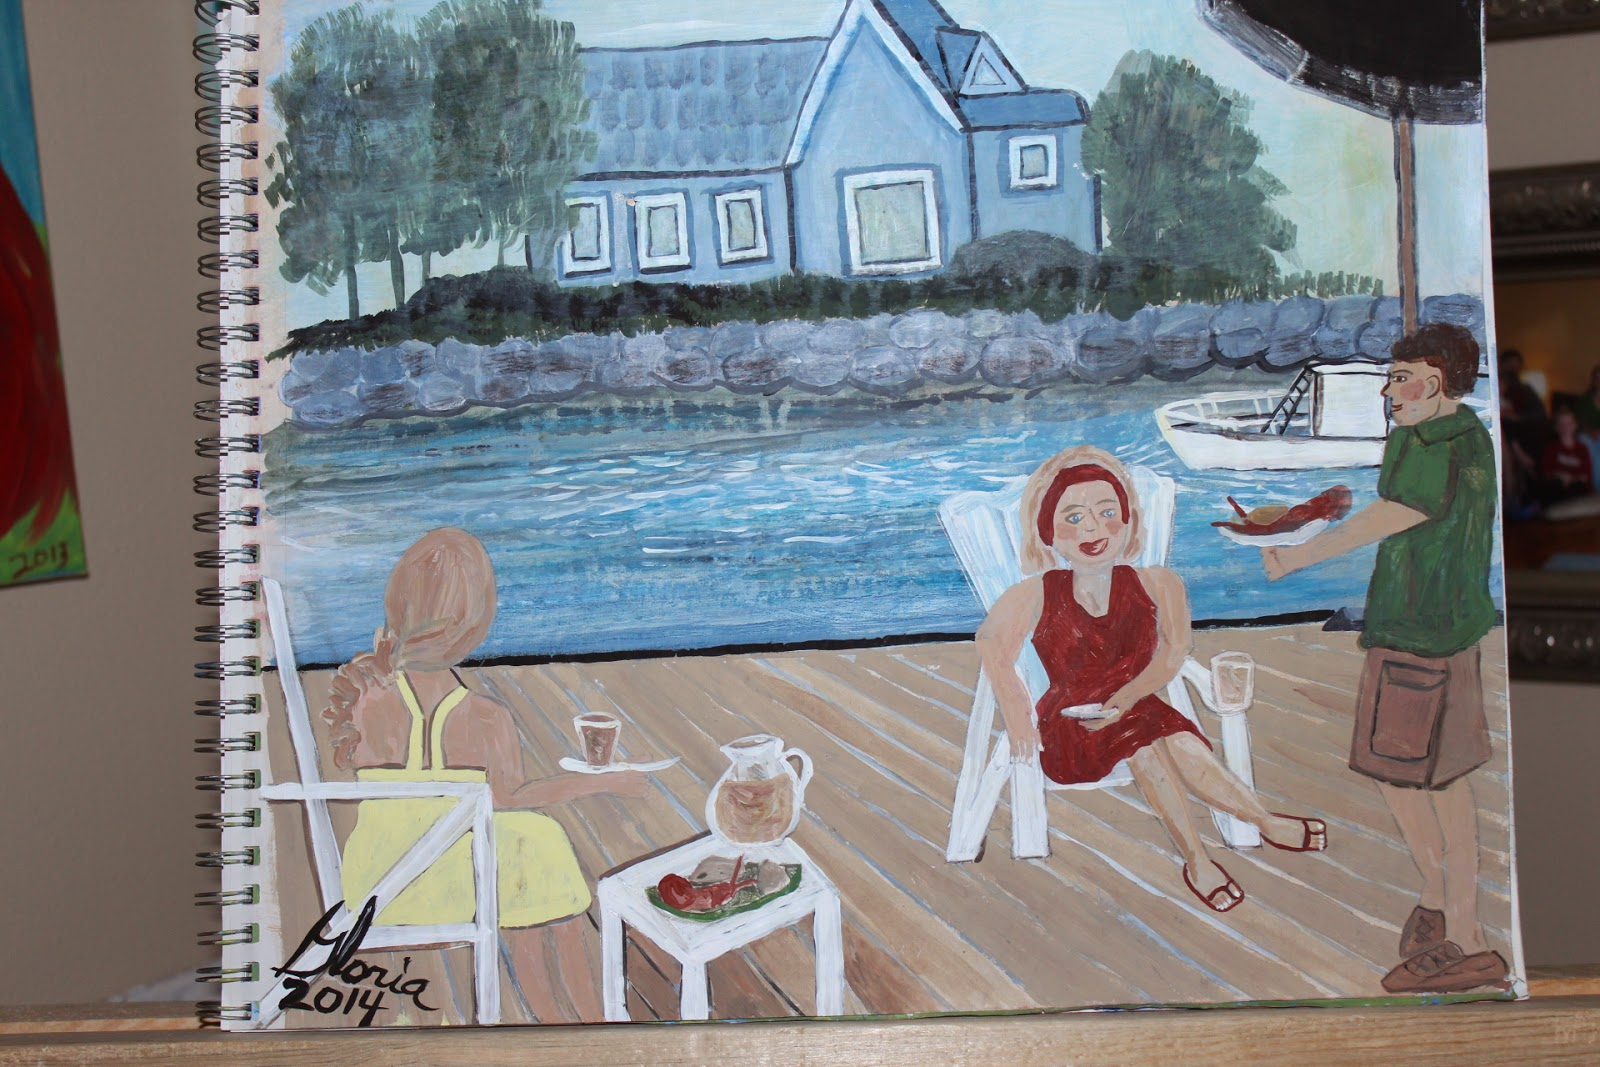 """Lunch on the dock"" sketch by Gloria Poole, mixed media, yr 2014"